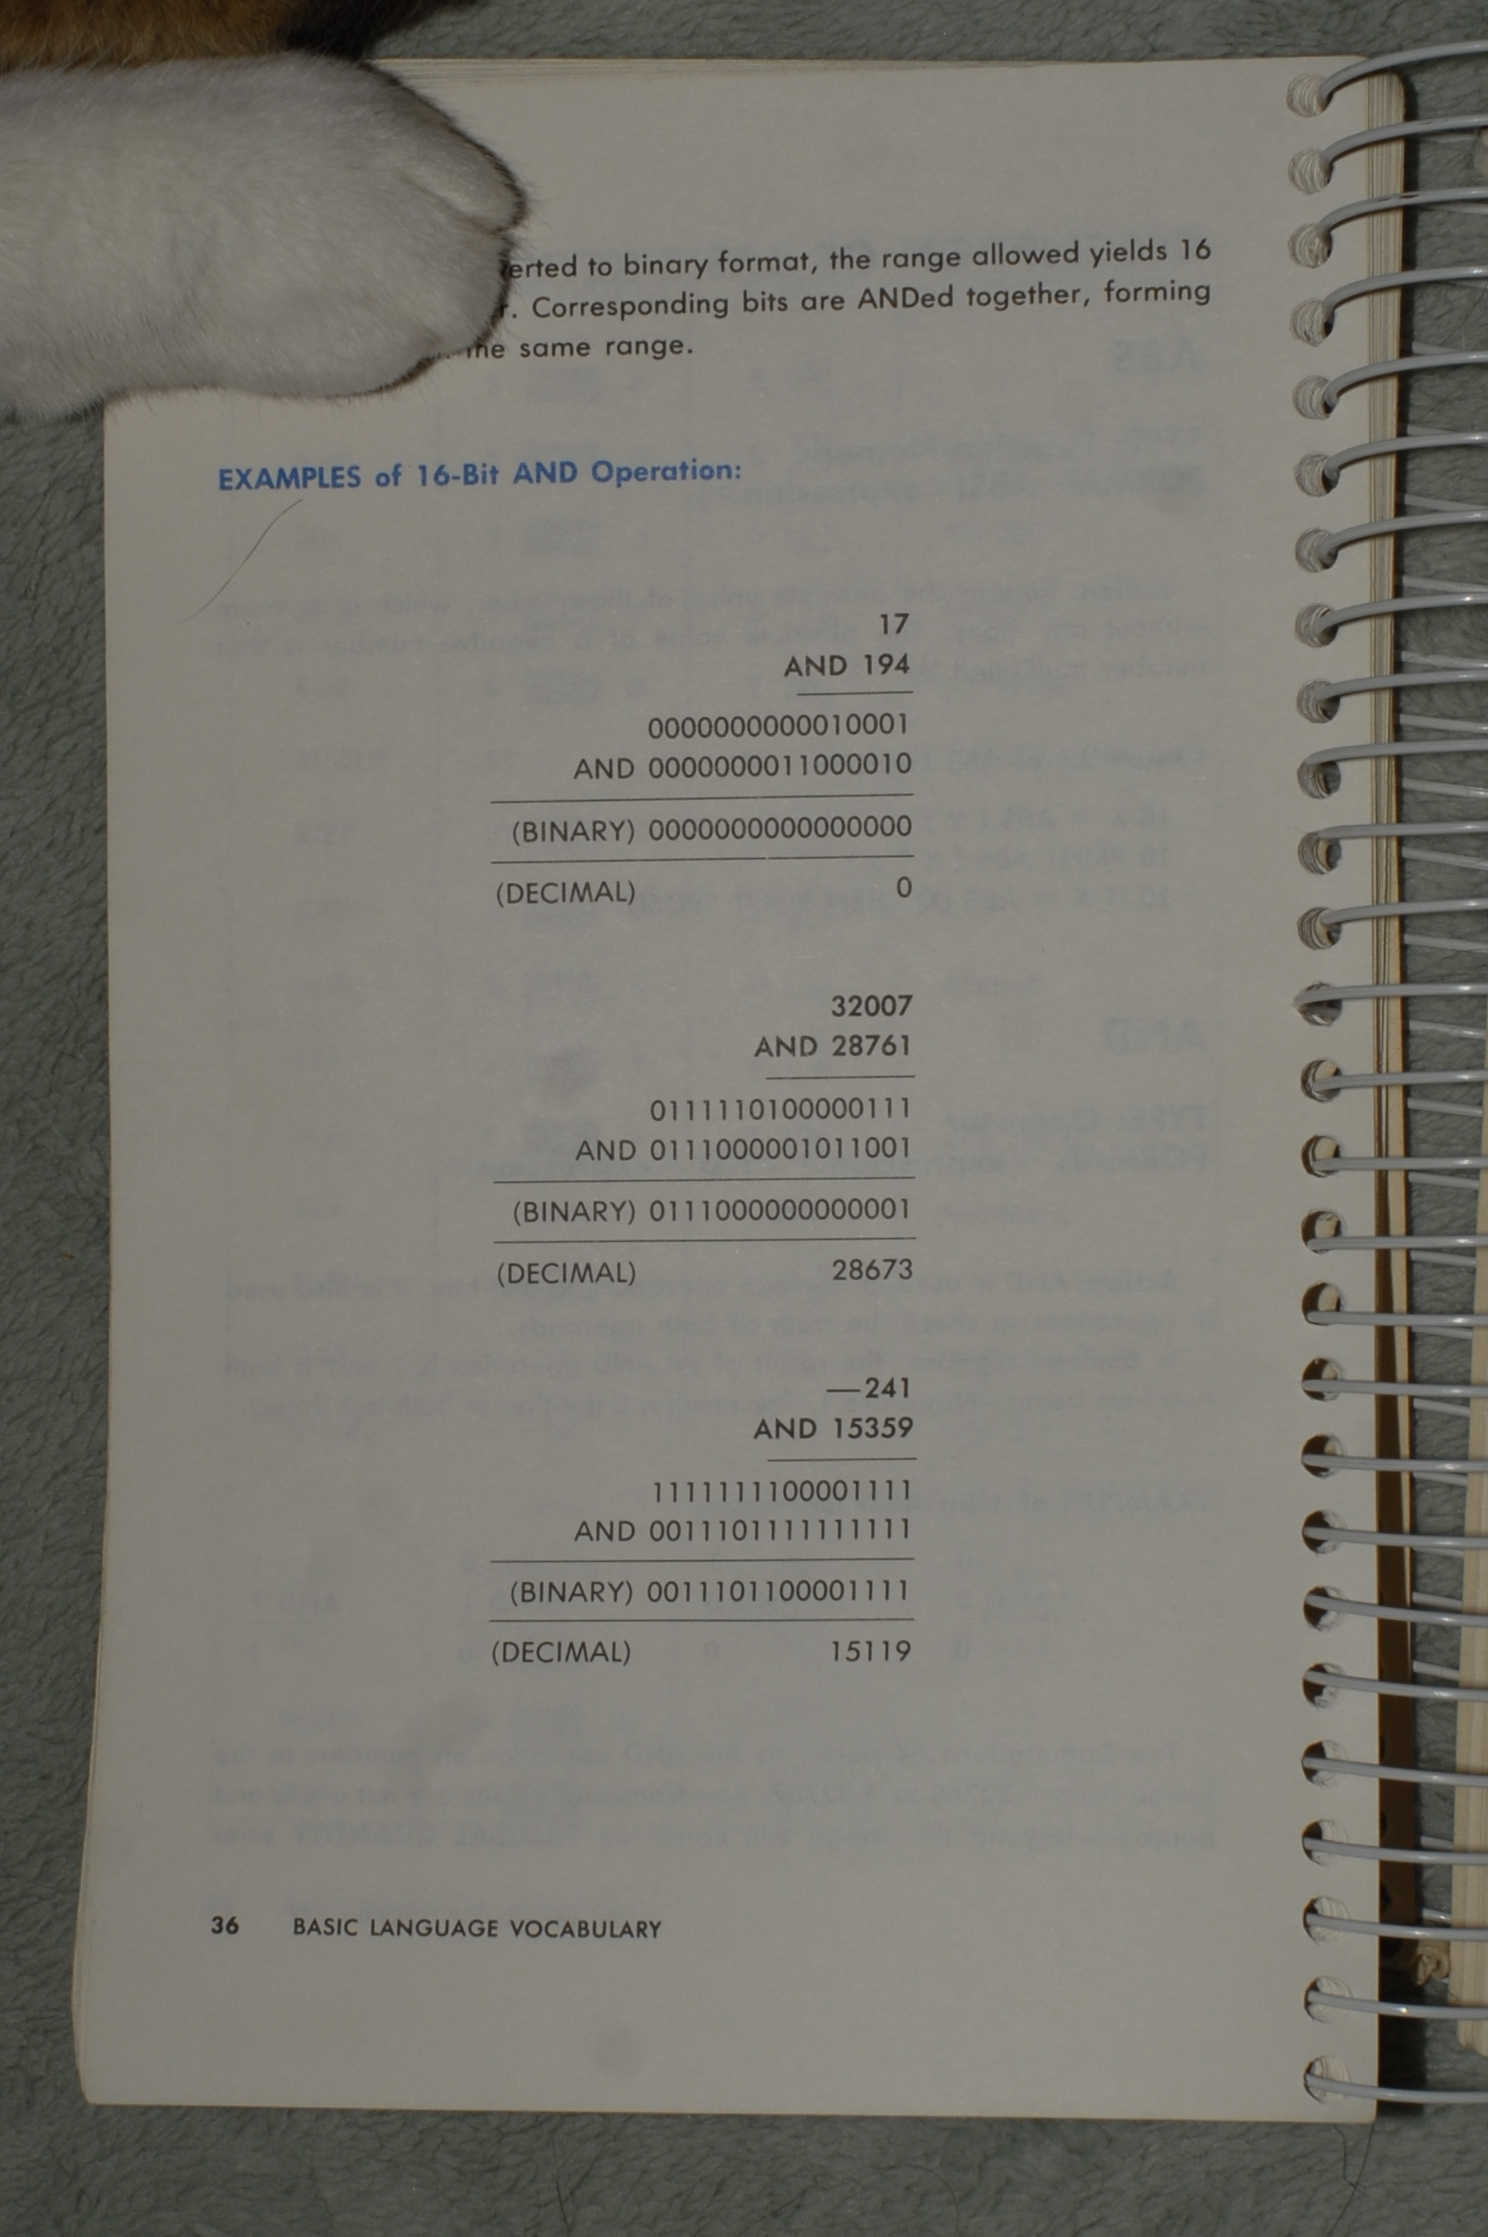 Commodore 64 Programmer's Reference Guide, Page 36 < Full Size >